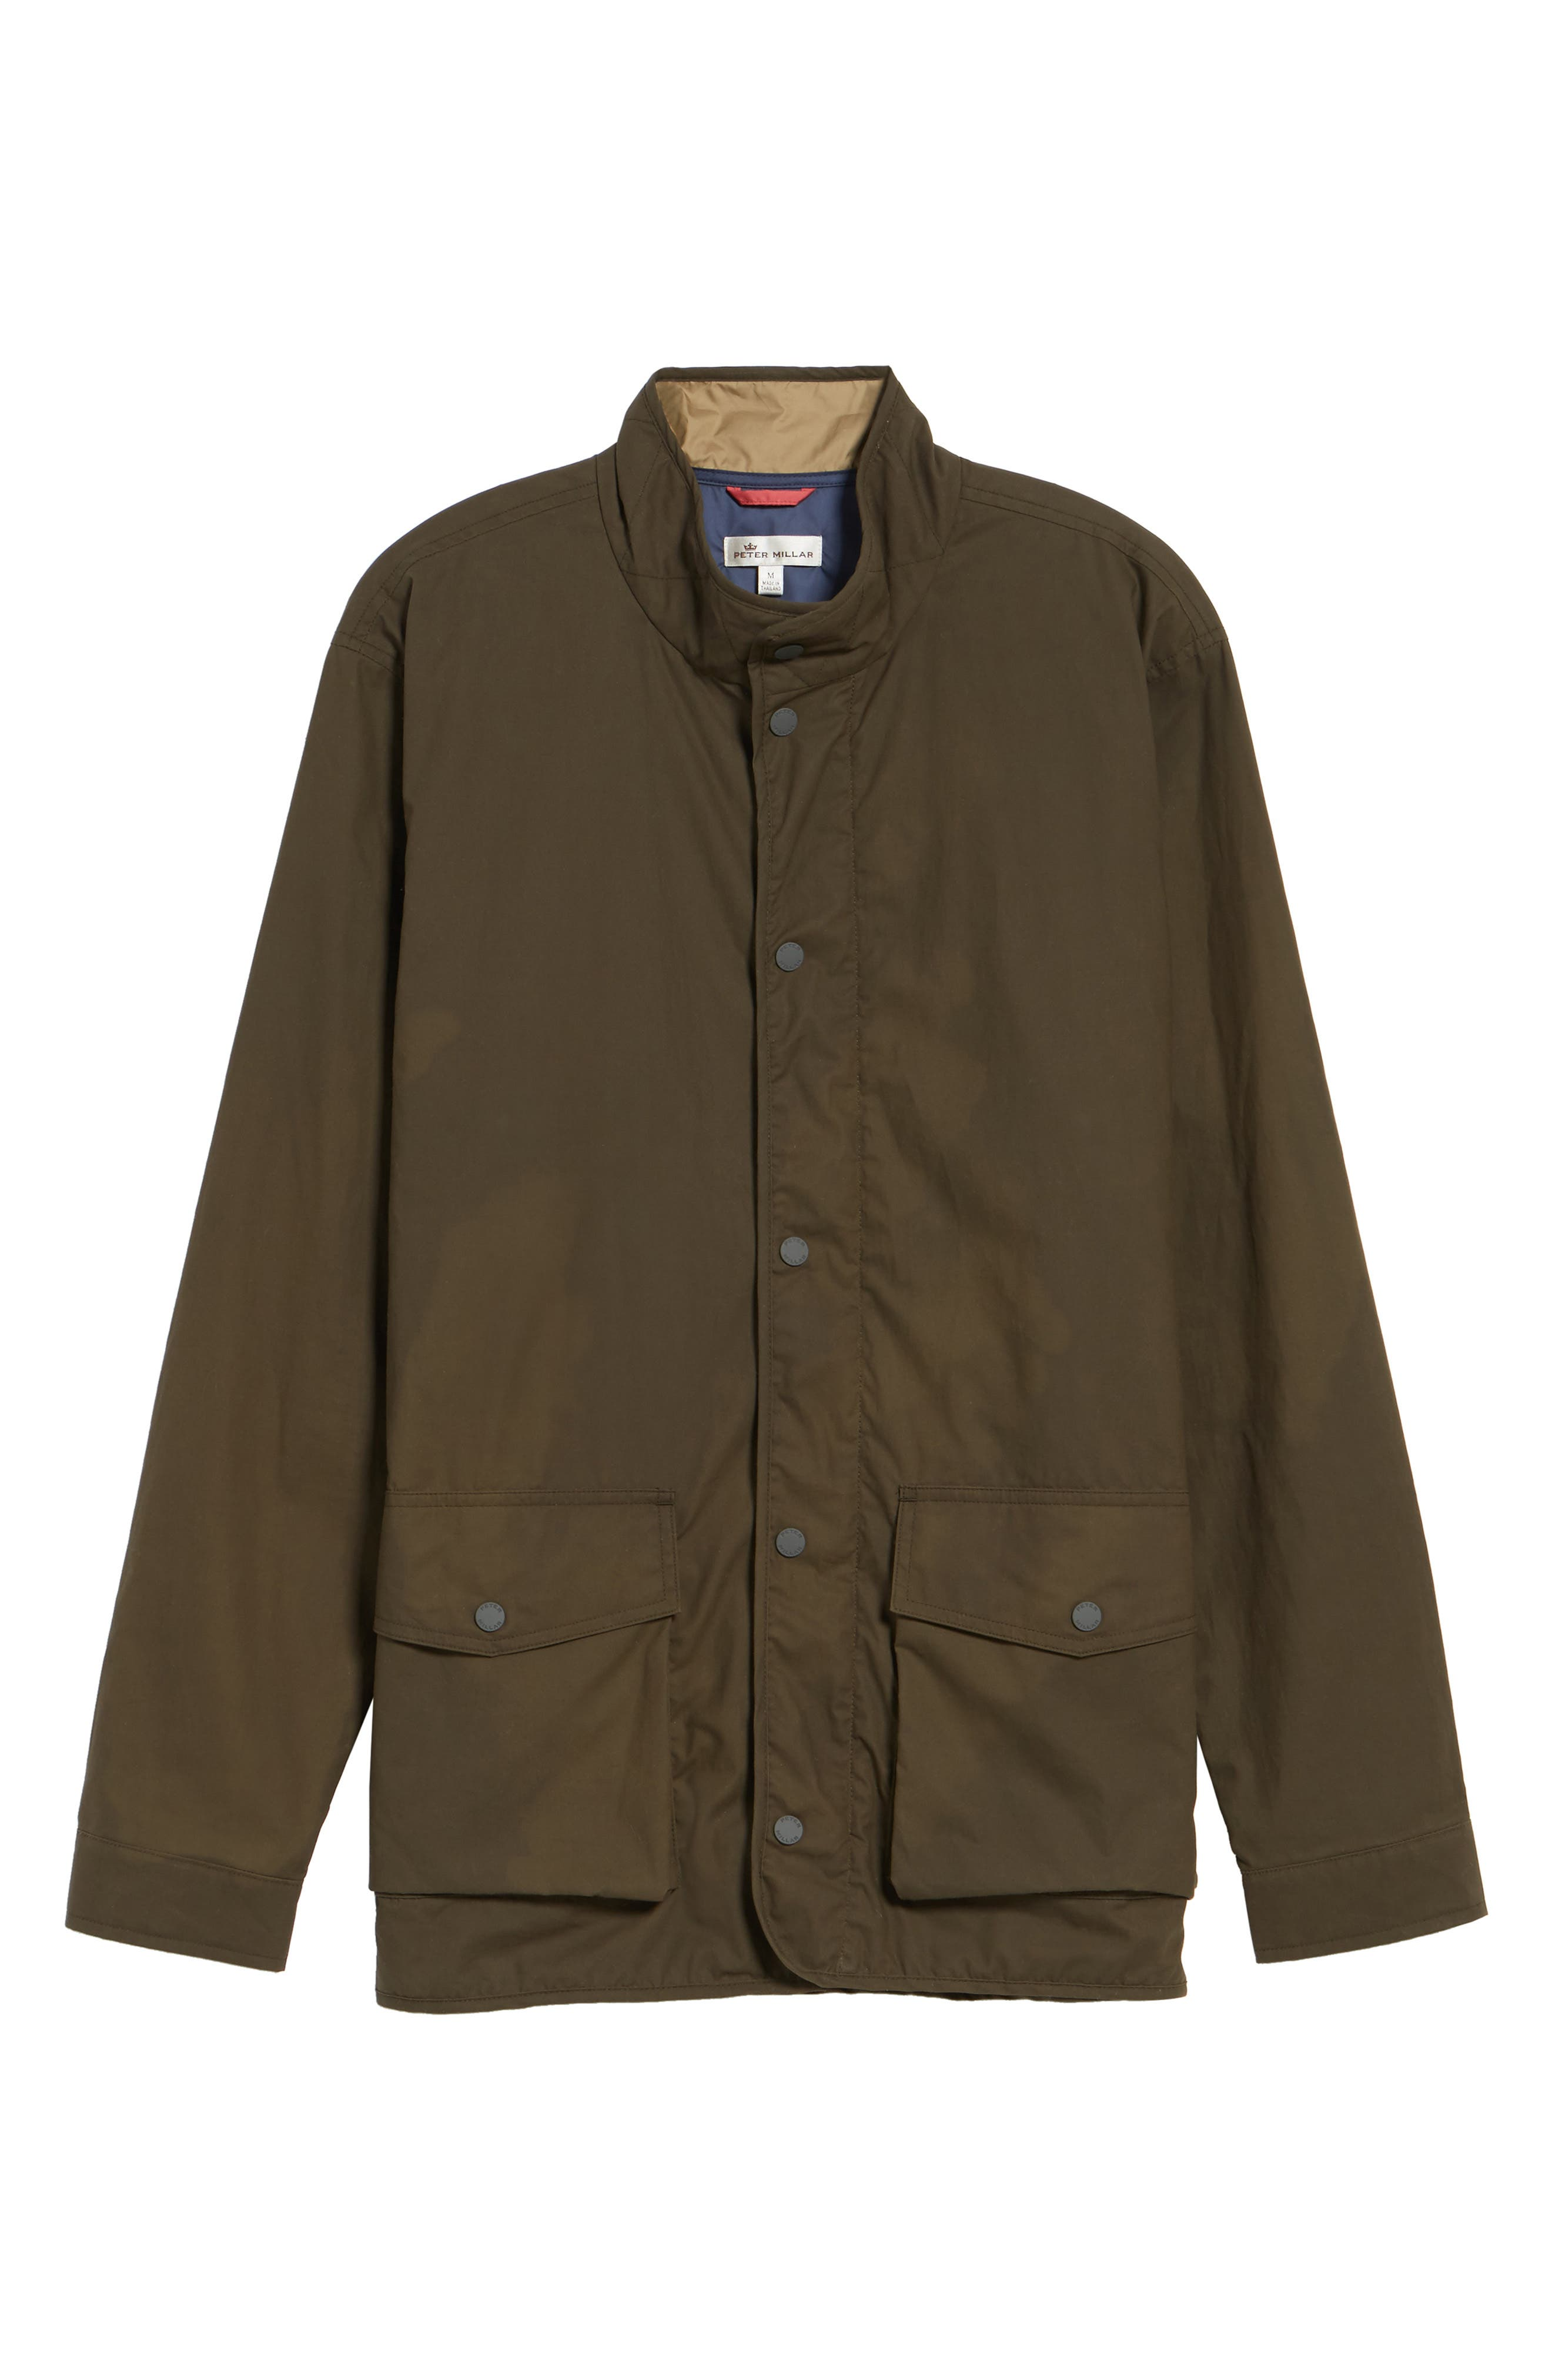 Harrison Wine Country Field Jacket,                             Alternate thumbnail 5, color,                             391